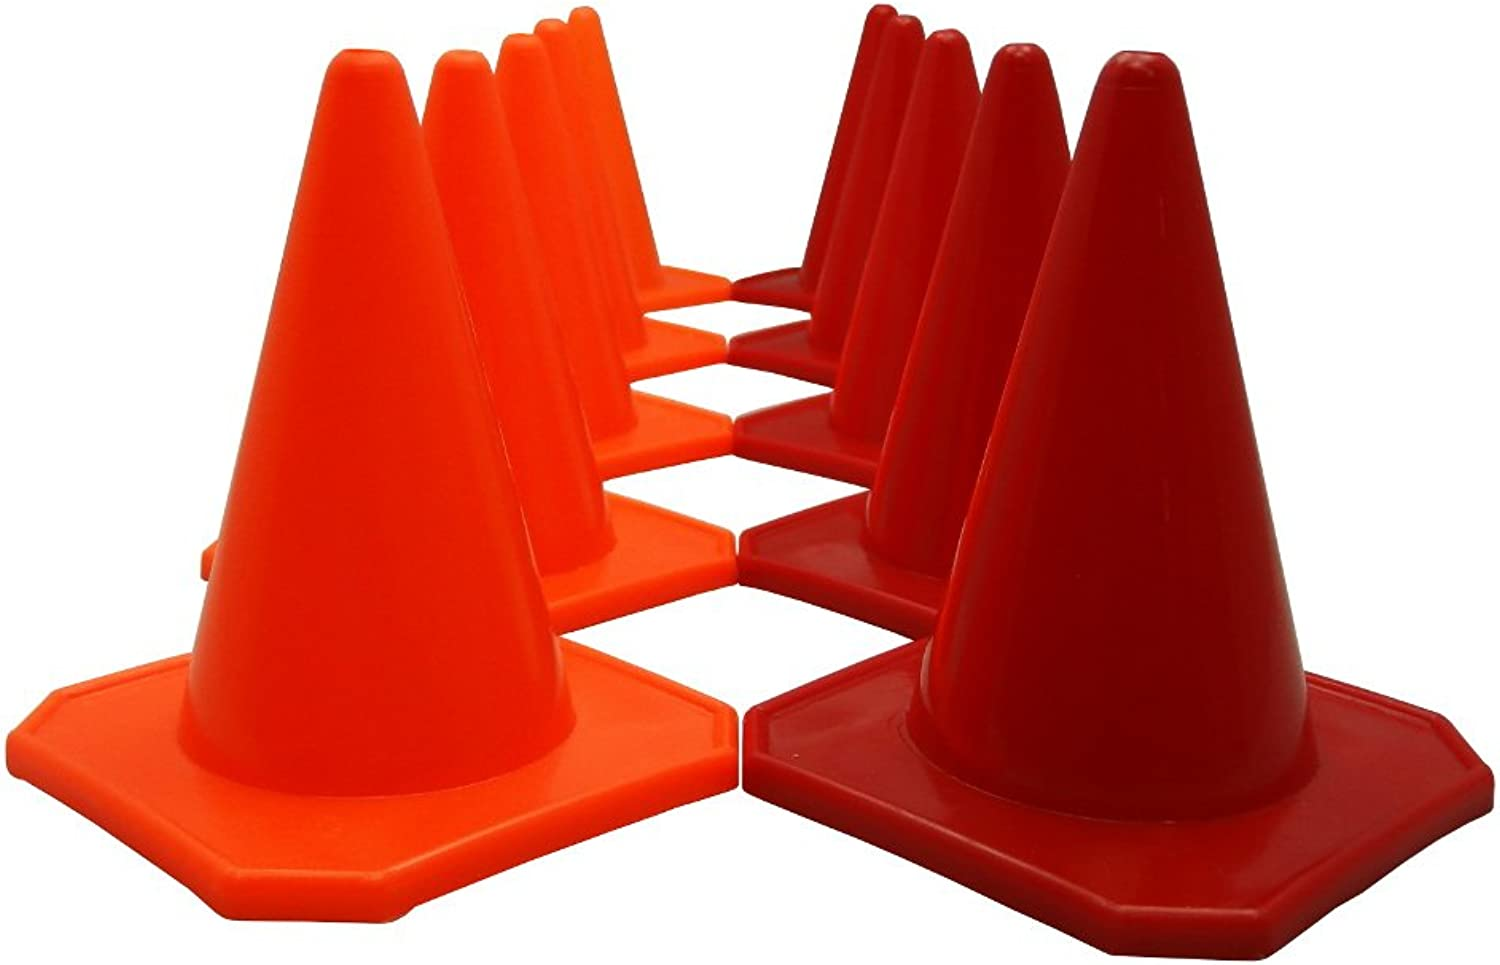 blueeeDot Trading 5 red 5 orange Four inch Agility Cones (10 Pack), 4 , orange & Red, Red & Yellow